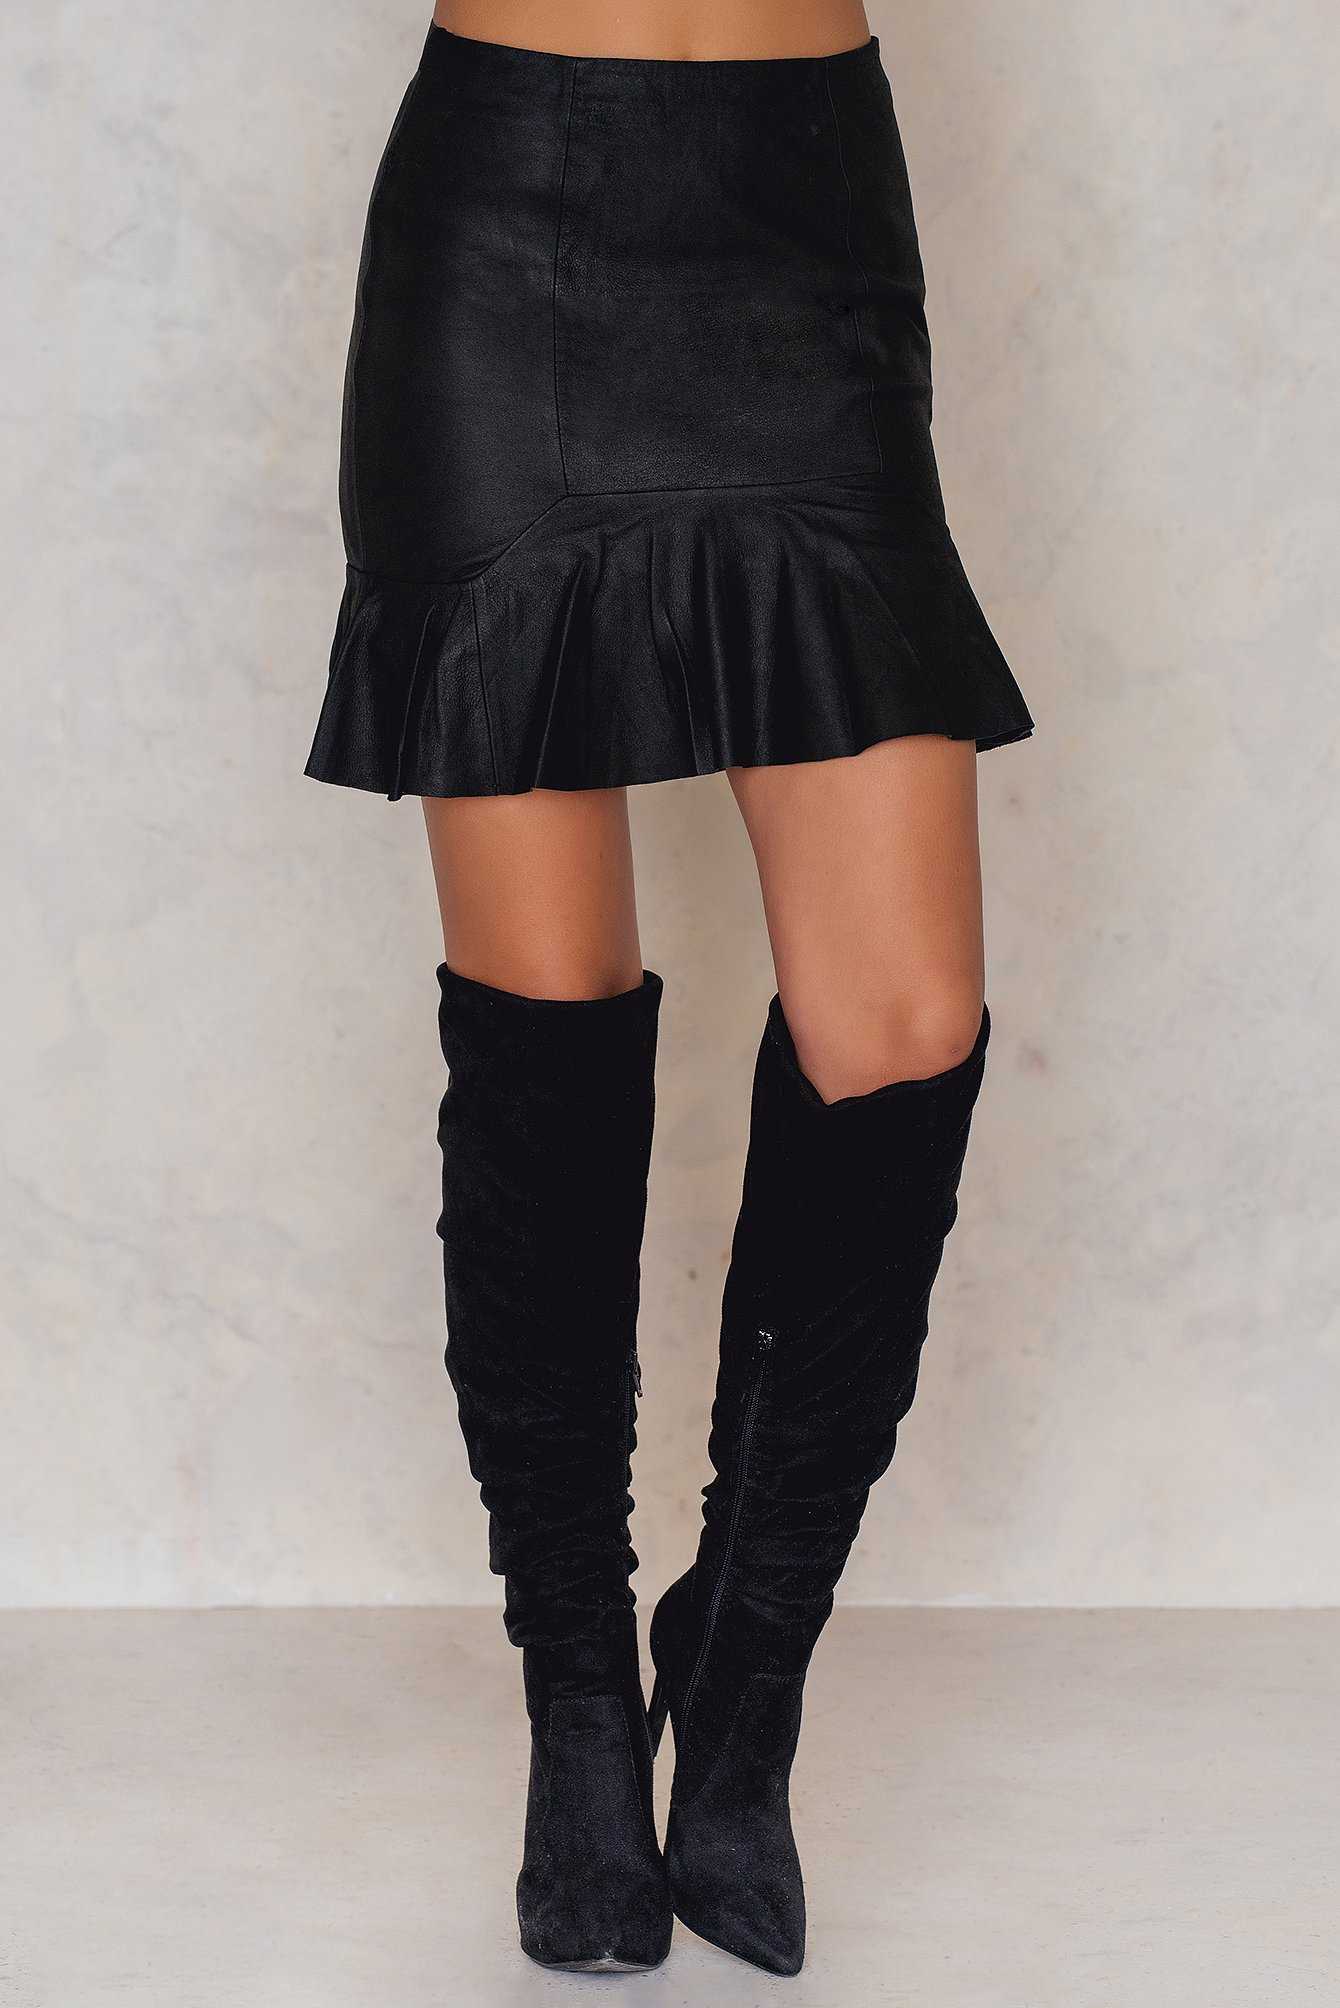 Black Yasrhea Nw Leather Skirt